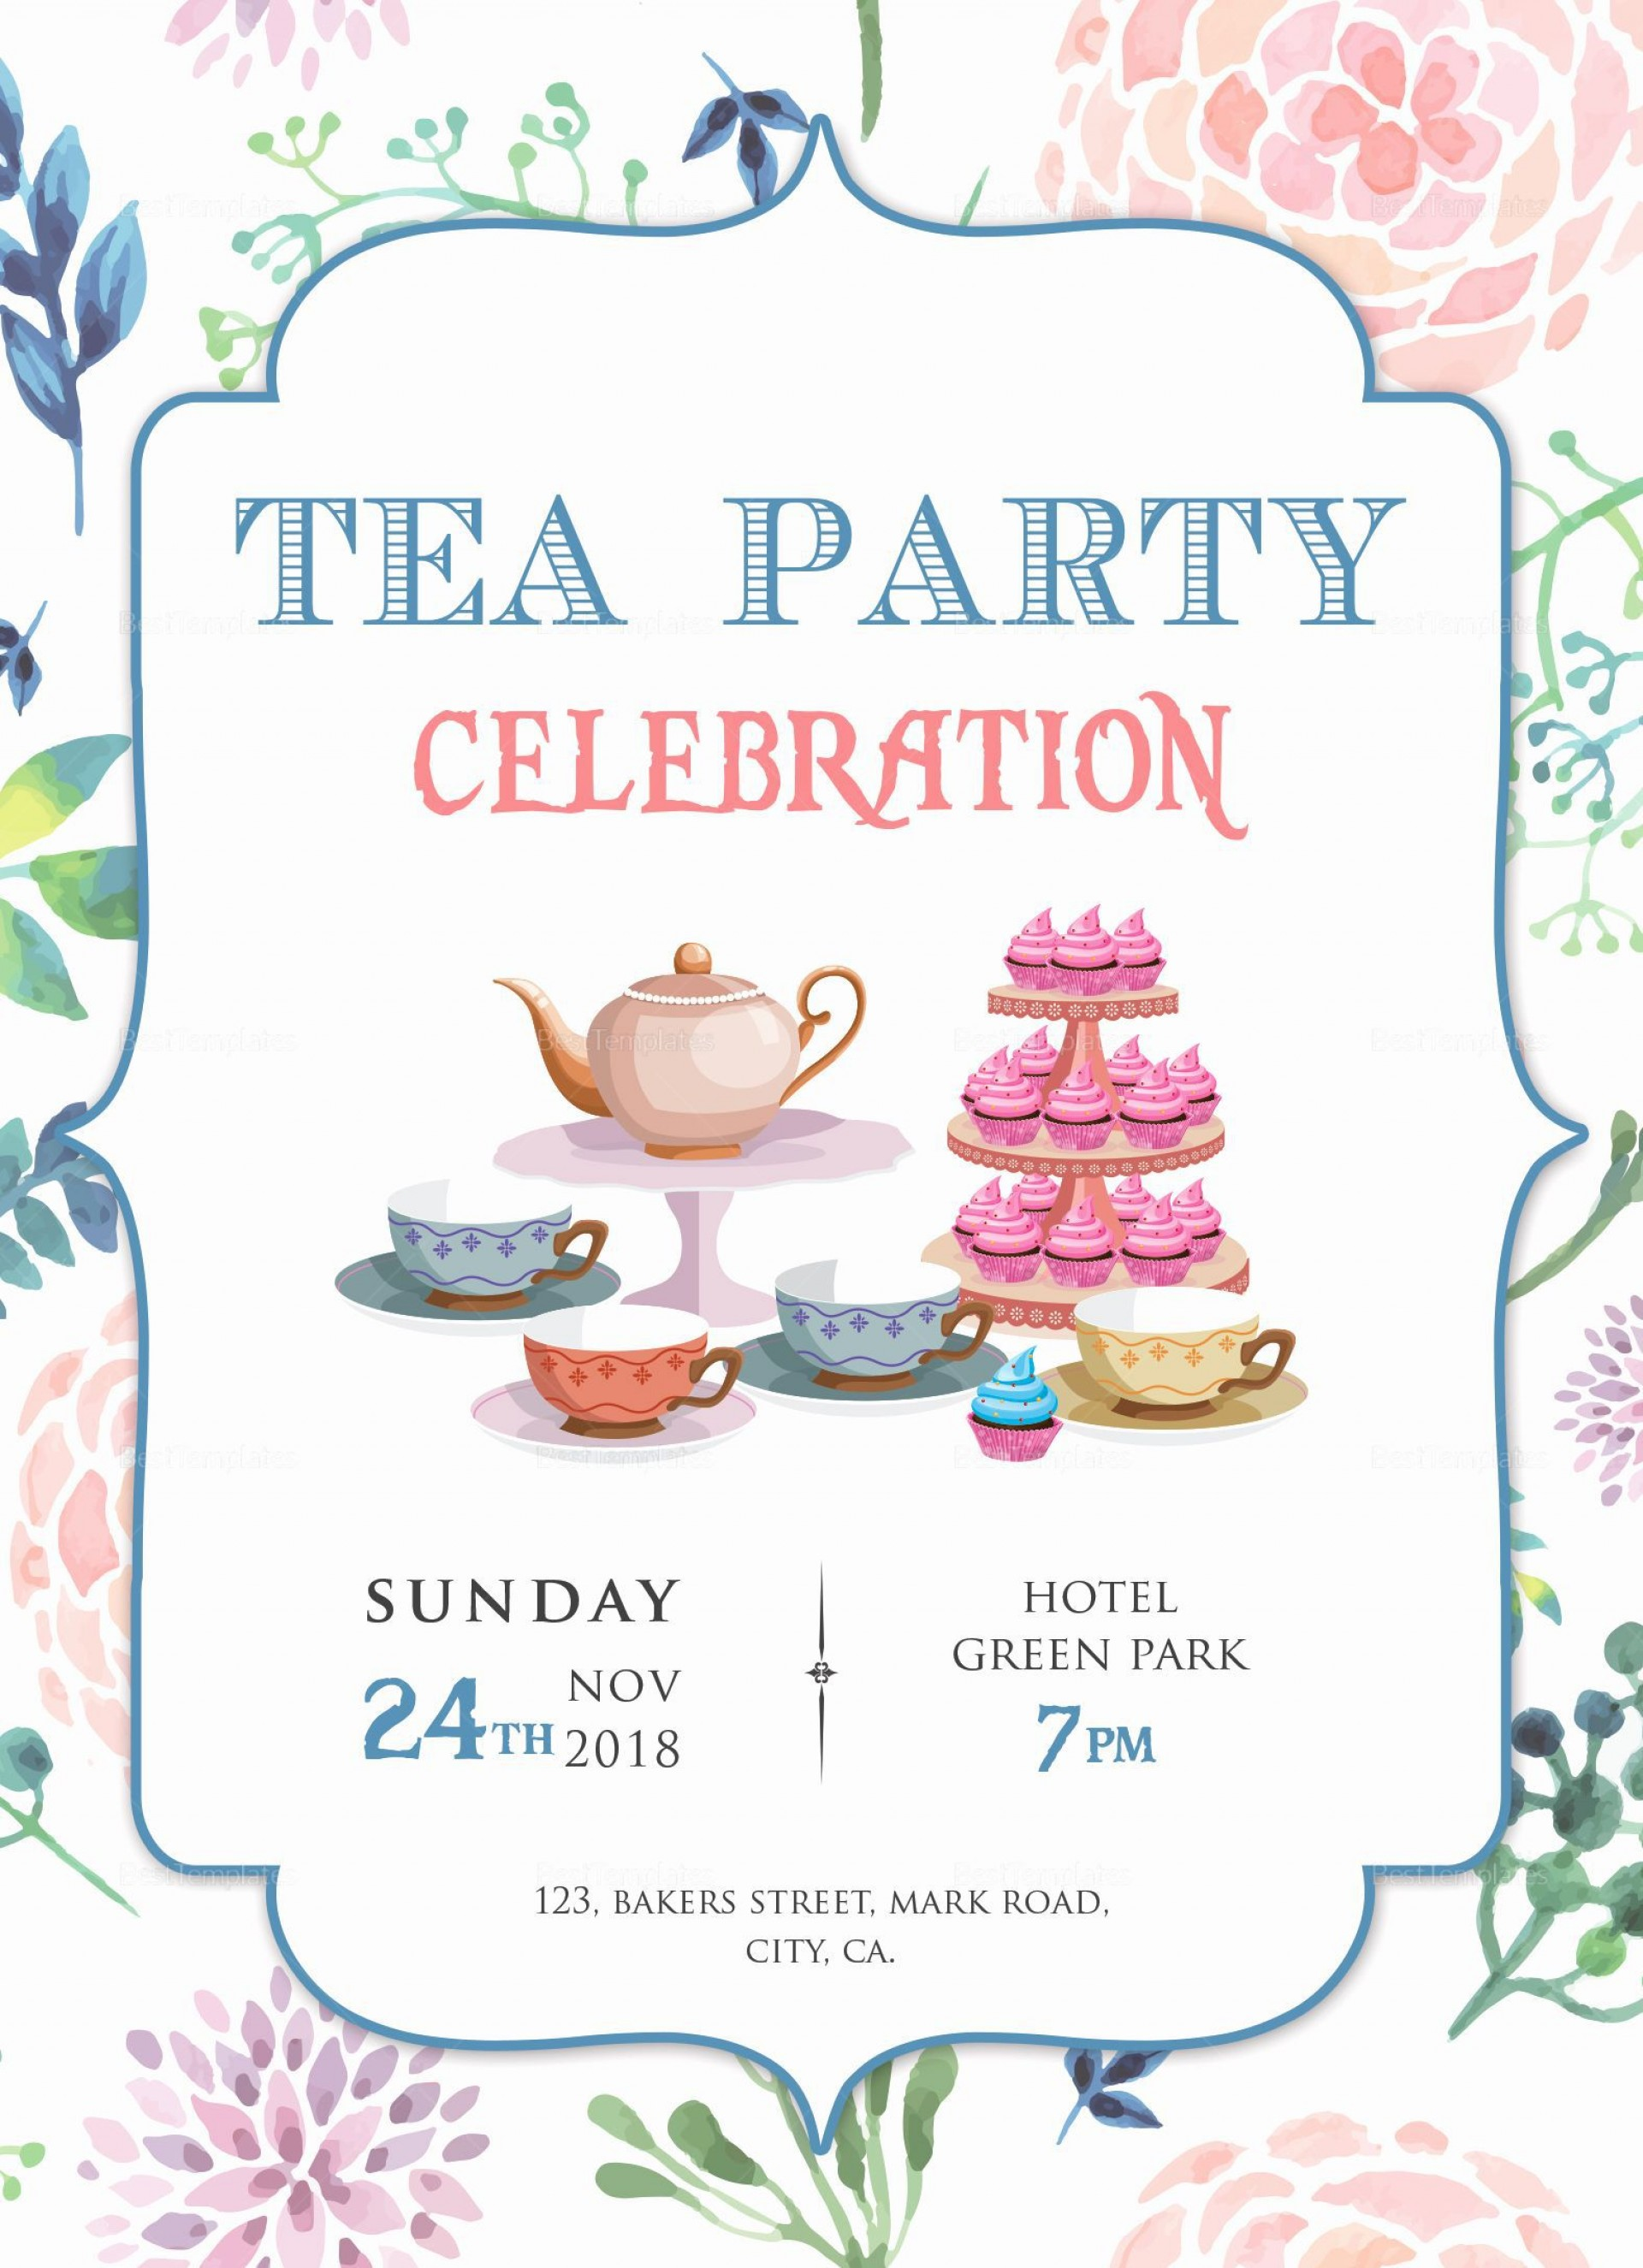 000 Simple Tea Party Invitation Template Sample  Templates High Free Download Bridal Shower1920